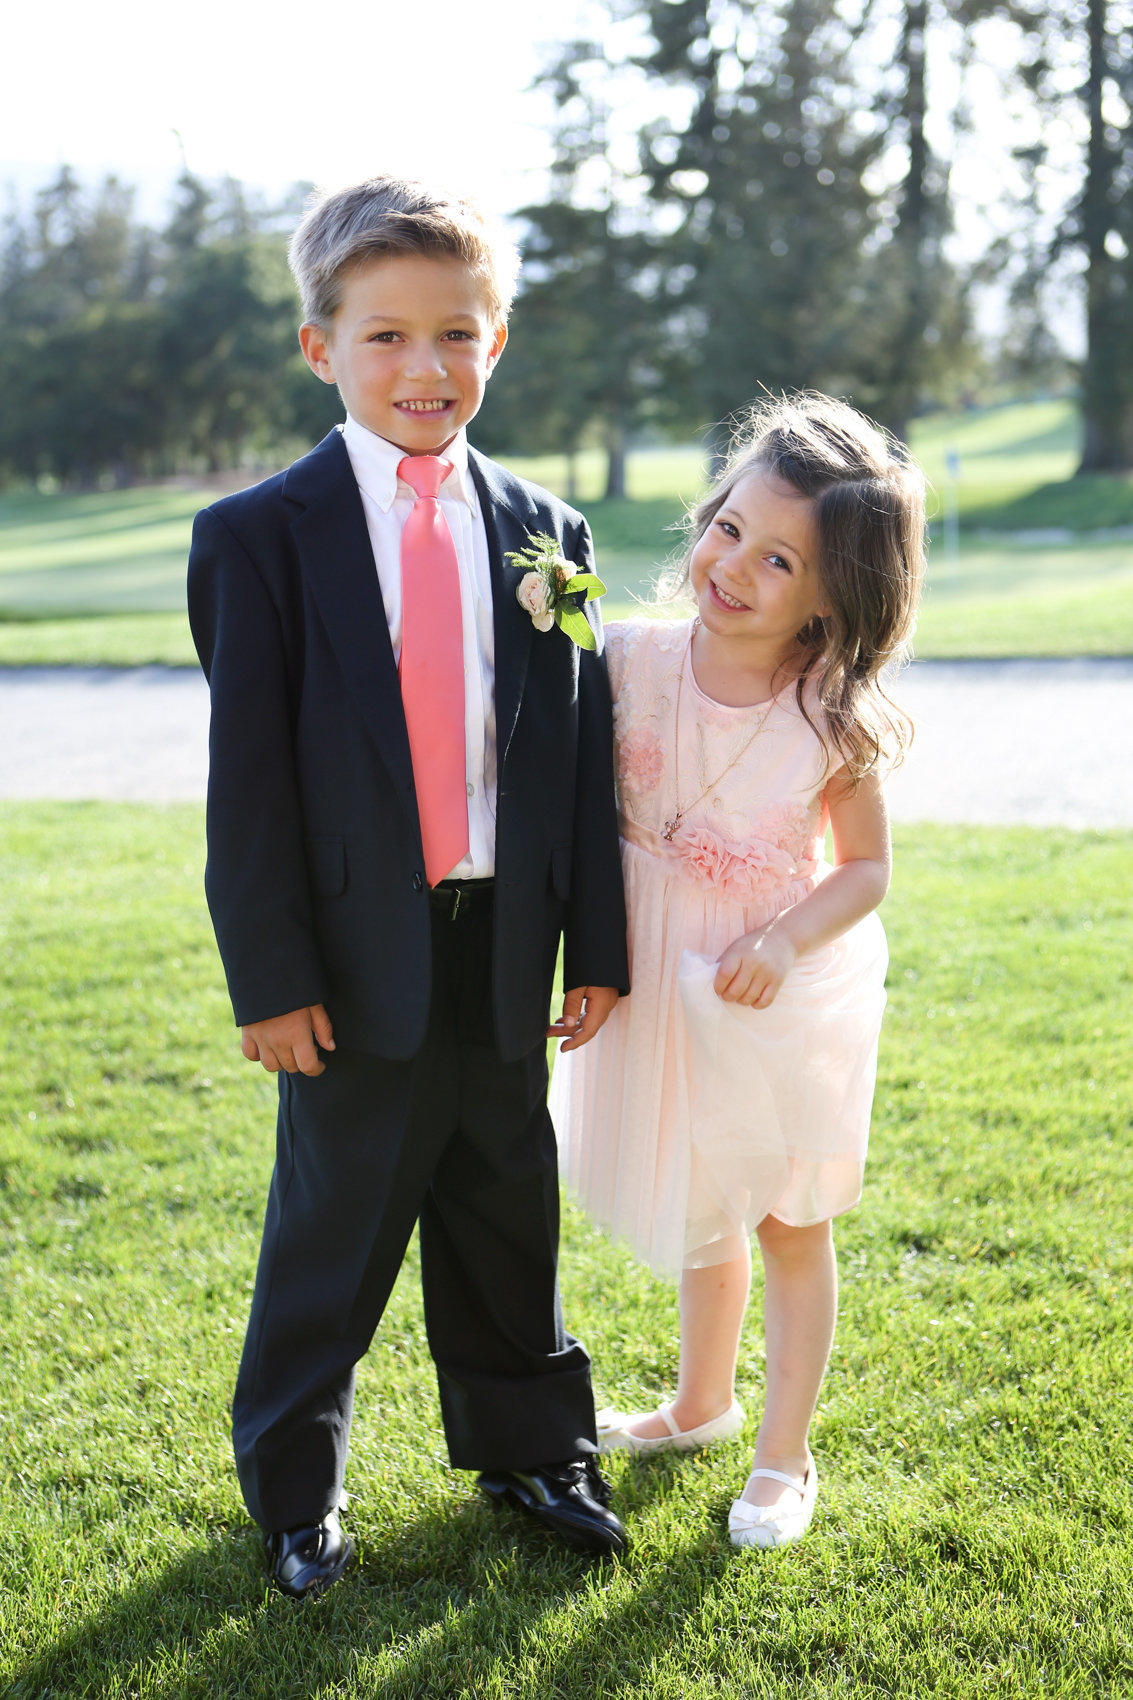 Deneffe studios wedding in northern california, portraits of children in wedding